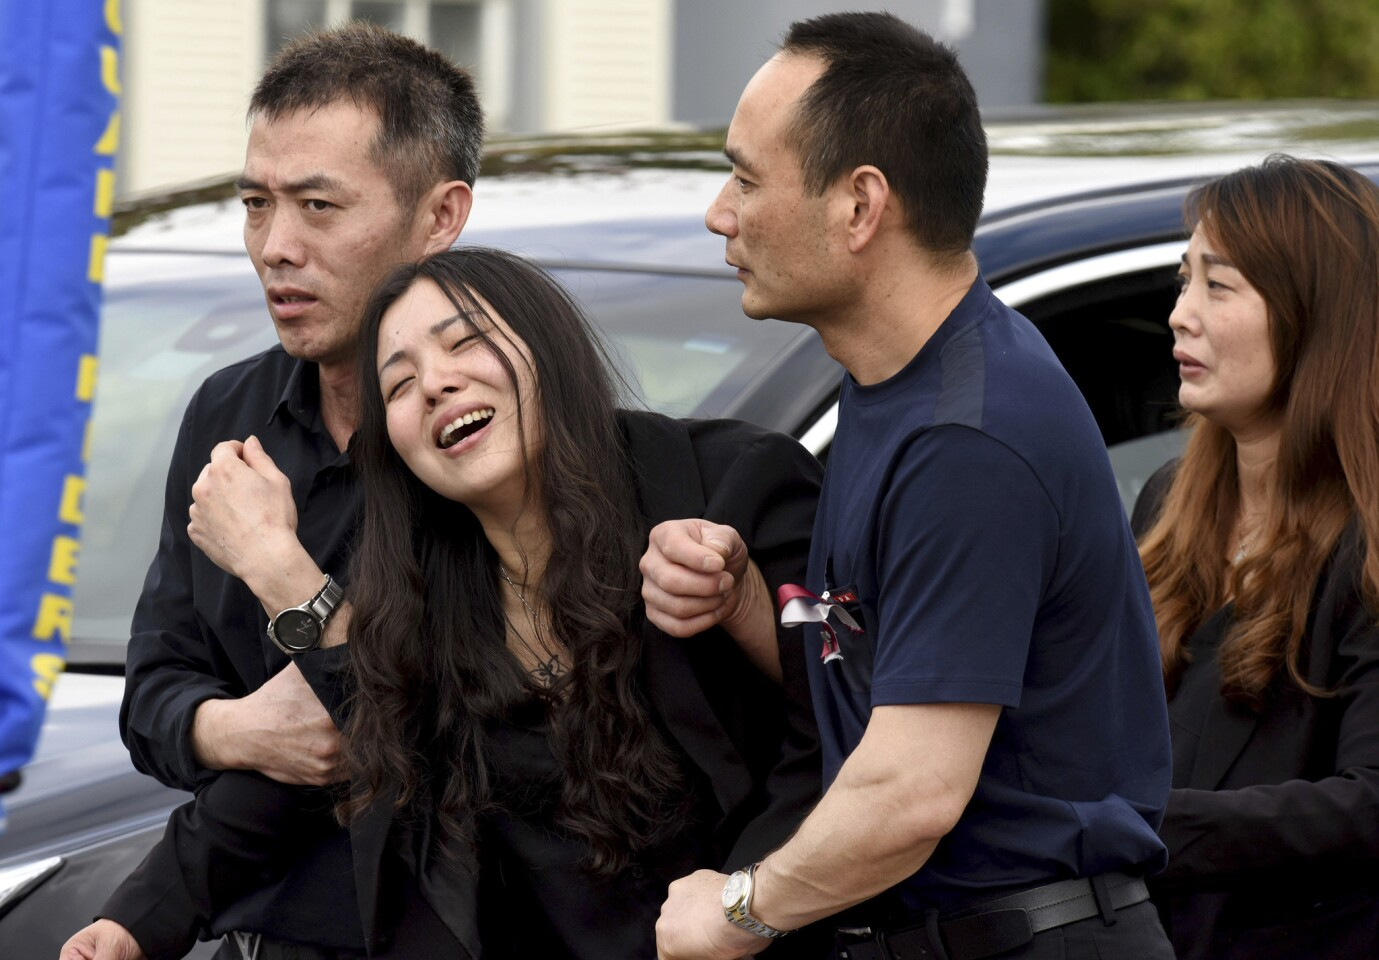 Peter Wang's mother, Hui, cries as she is helped into a waiting car with her family after the memorial service for her 15-year-old son in Coral Springs, Fla., on Feb. 20, 2018.